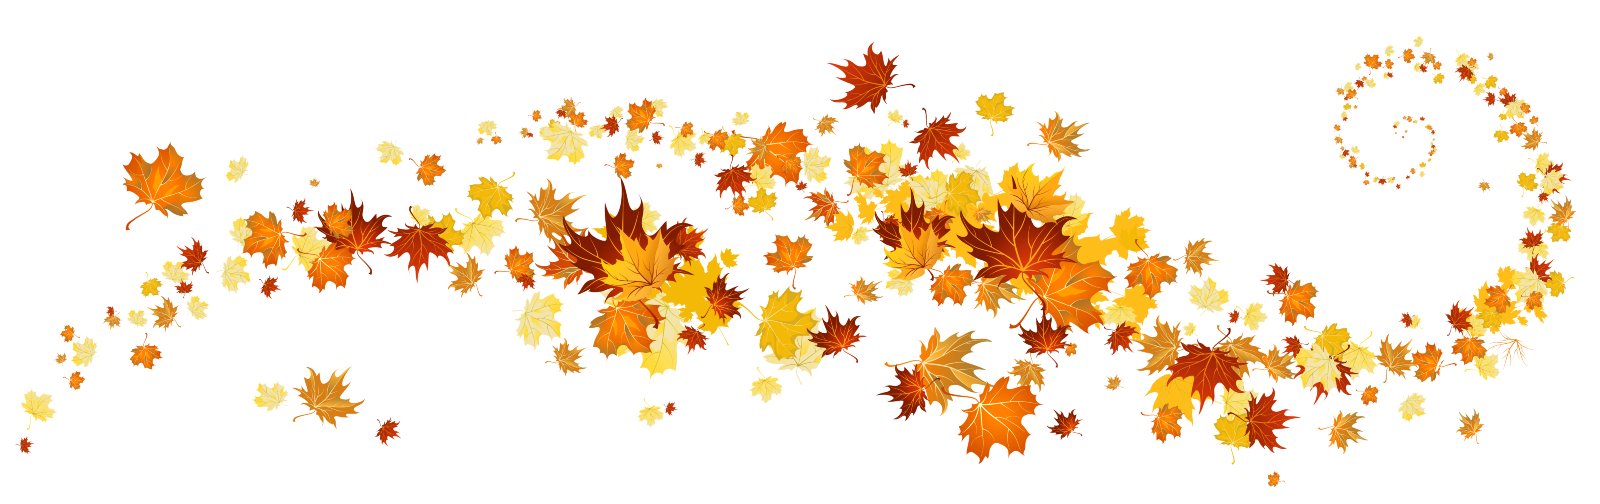 Leaves blowing in the wind clipart clipart freeuse Leaves blowing clipart clipart images gallery for free download ... clipart freeuse